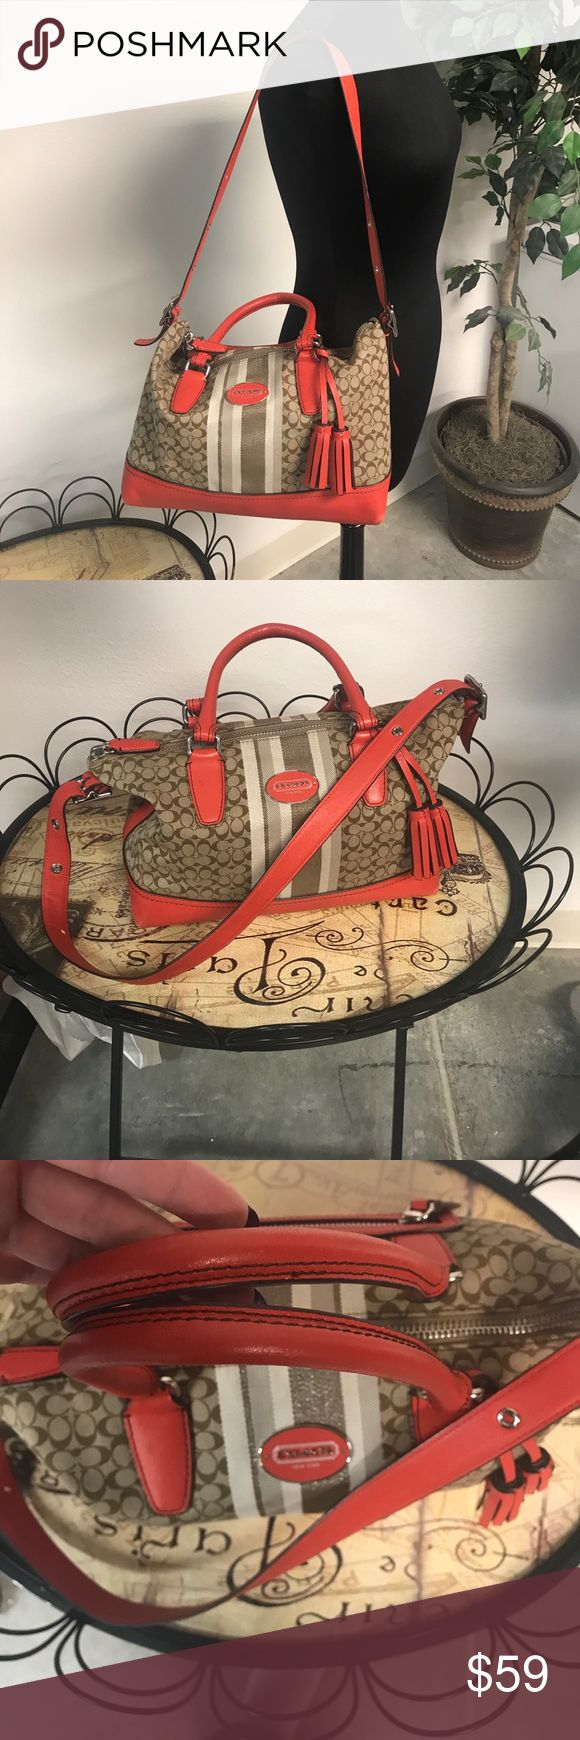 Coach legacy stripe orange satchel! Beautiful Coach legacy stripe satchel. Creed #29622E The corners do have wear. Lovely fall colors. Silver hardware. Smoke free. Coach Bags Shoulder Bags